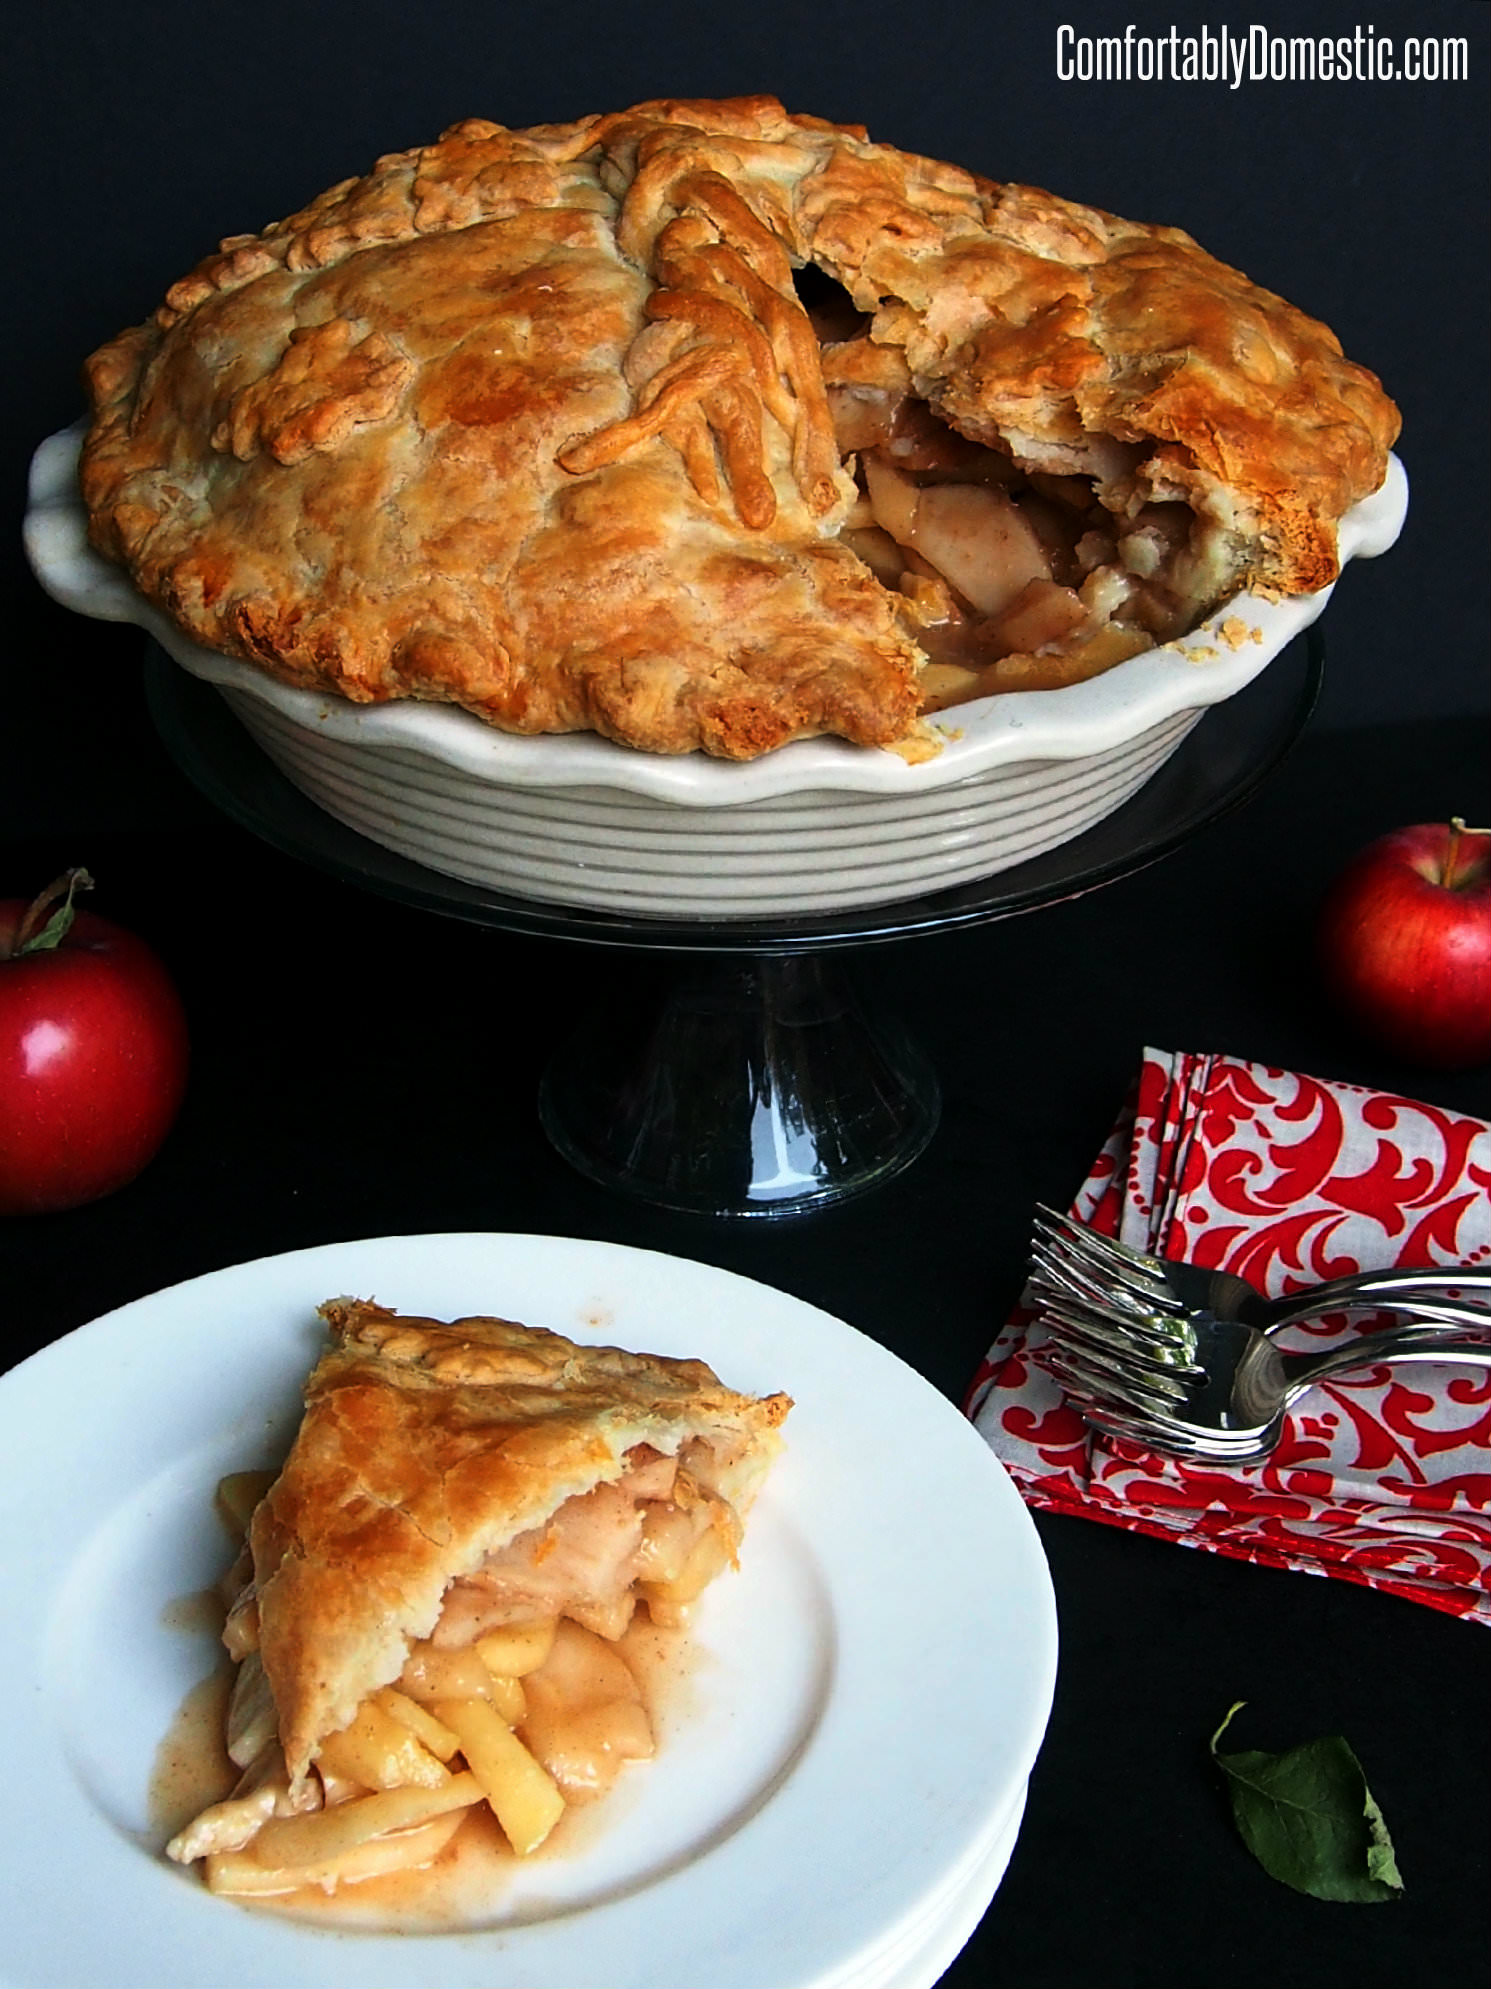 Mile high apple pie is a deep dish take on an American Classic Apple Pie, stuffed with a variety of tart apples in a caramel-like filling.| ComfortablyDomestic.com